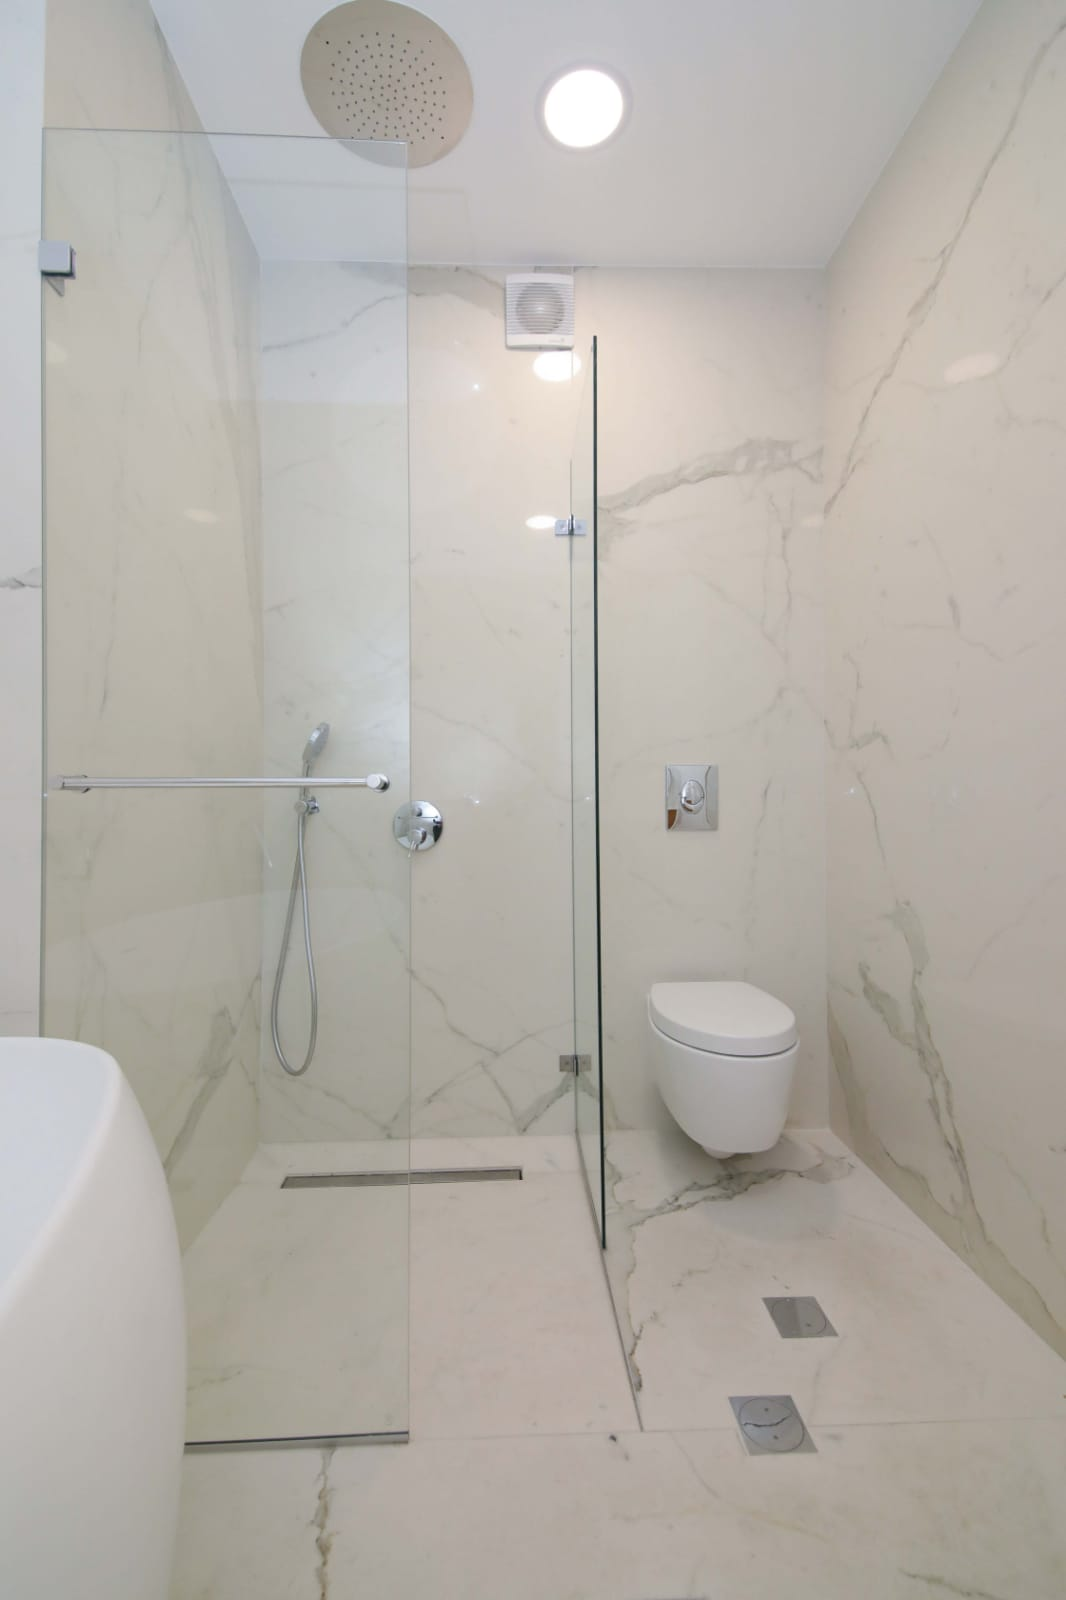 22.Luxury 2BR city Center/Mamilla image 4